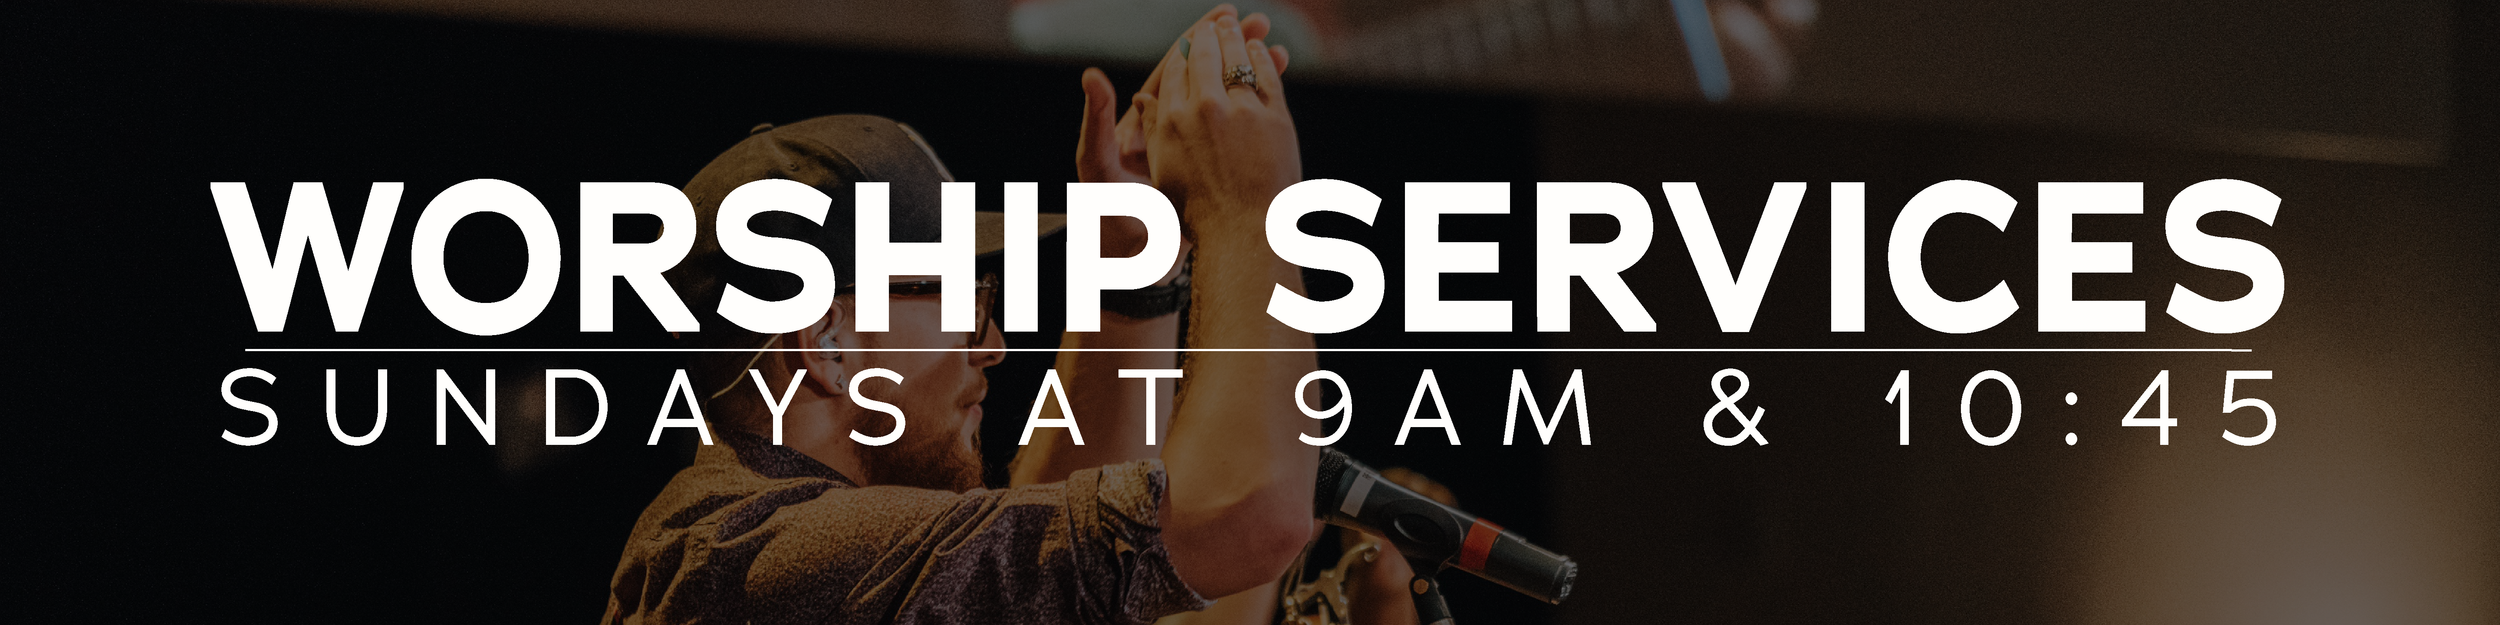 Worship-Services-Banner.png